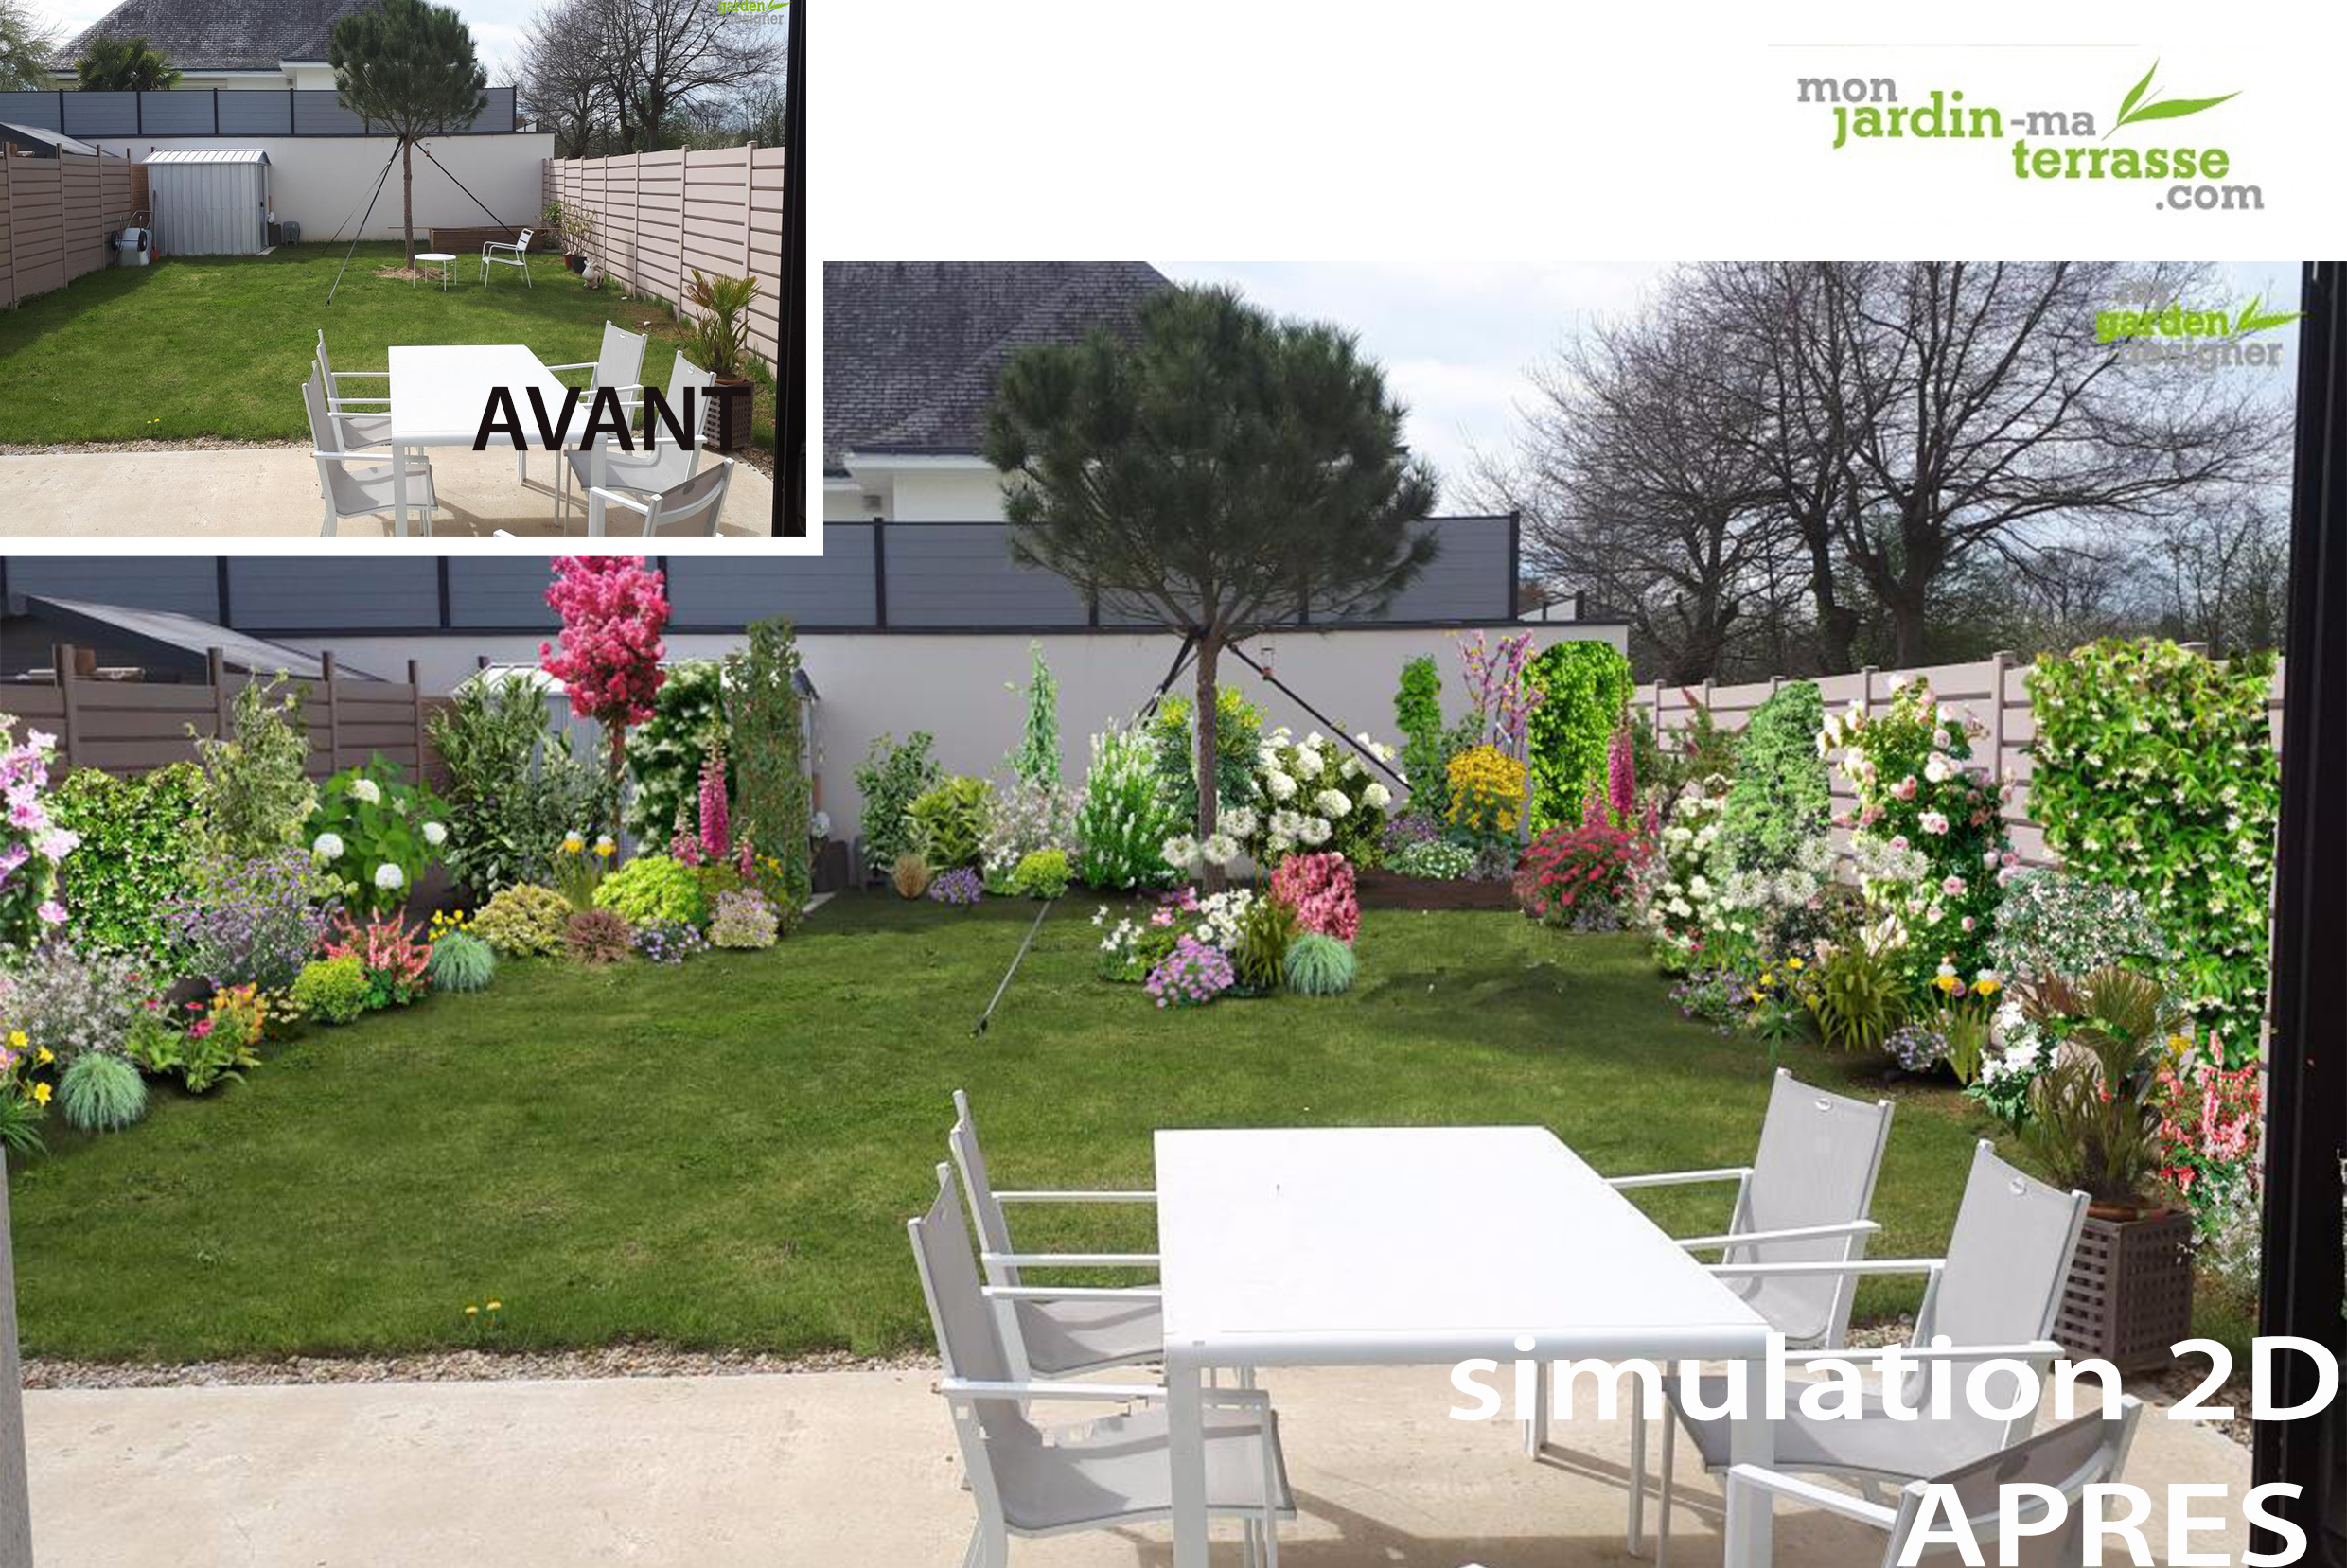 Comment am nager un petit jardin rectangulaire monjardin for Amenagement exterieur petit terrain